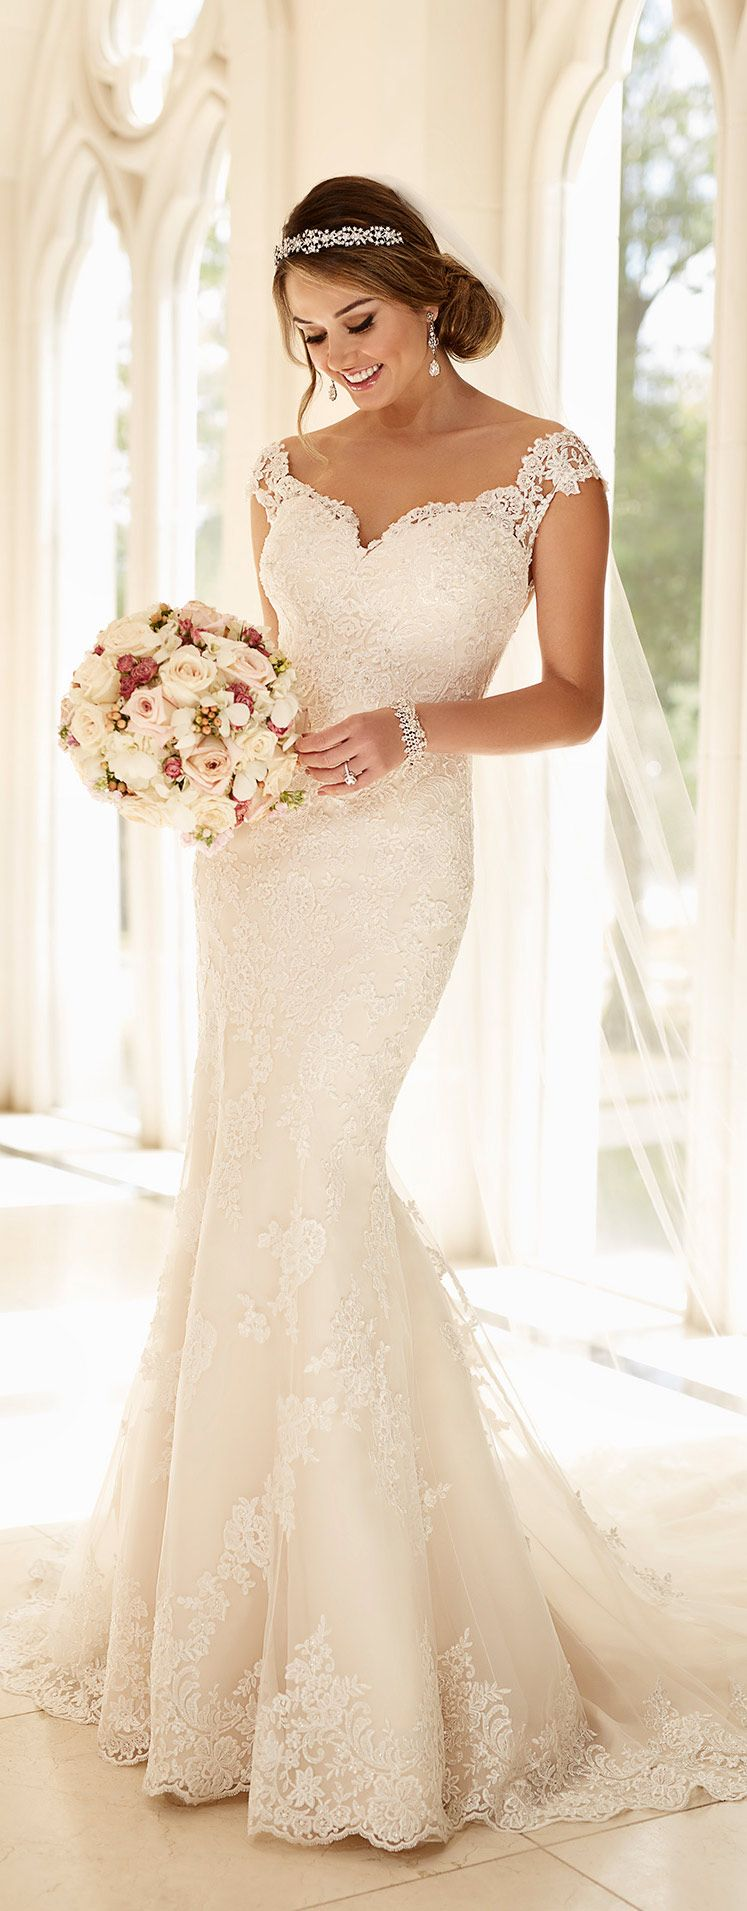 Stella york off shoulder long lace wedding dress wedding day